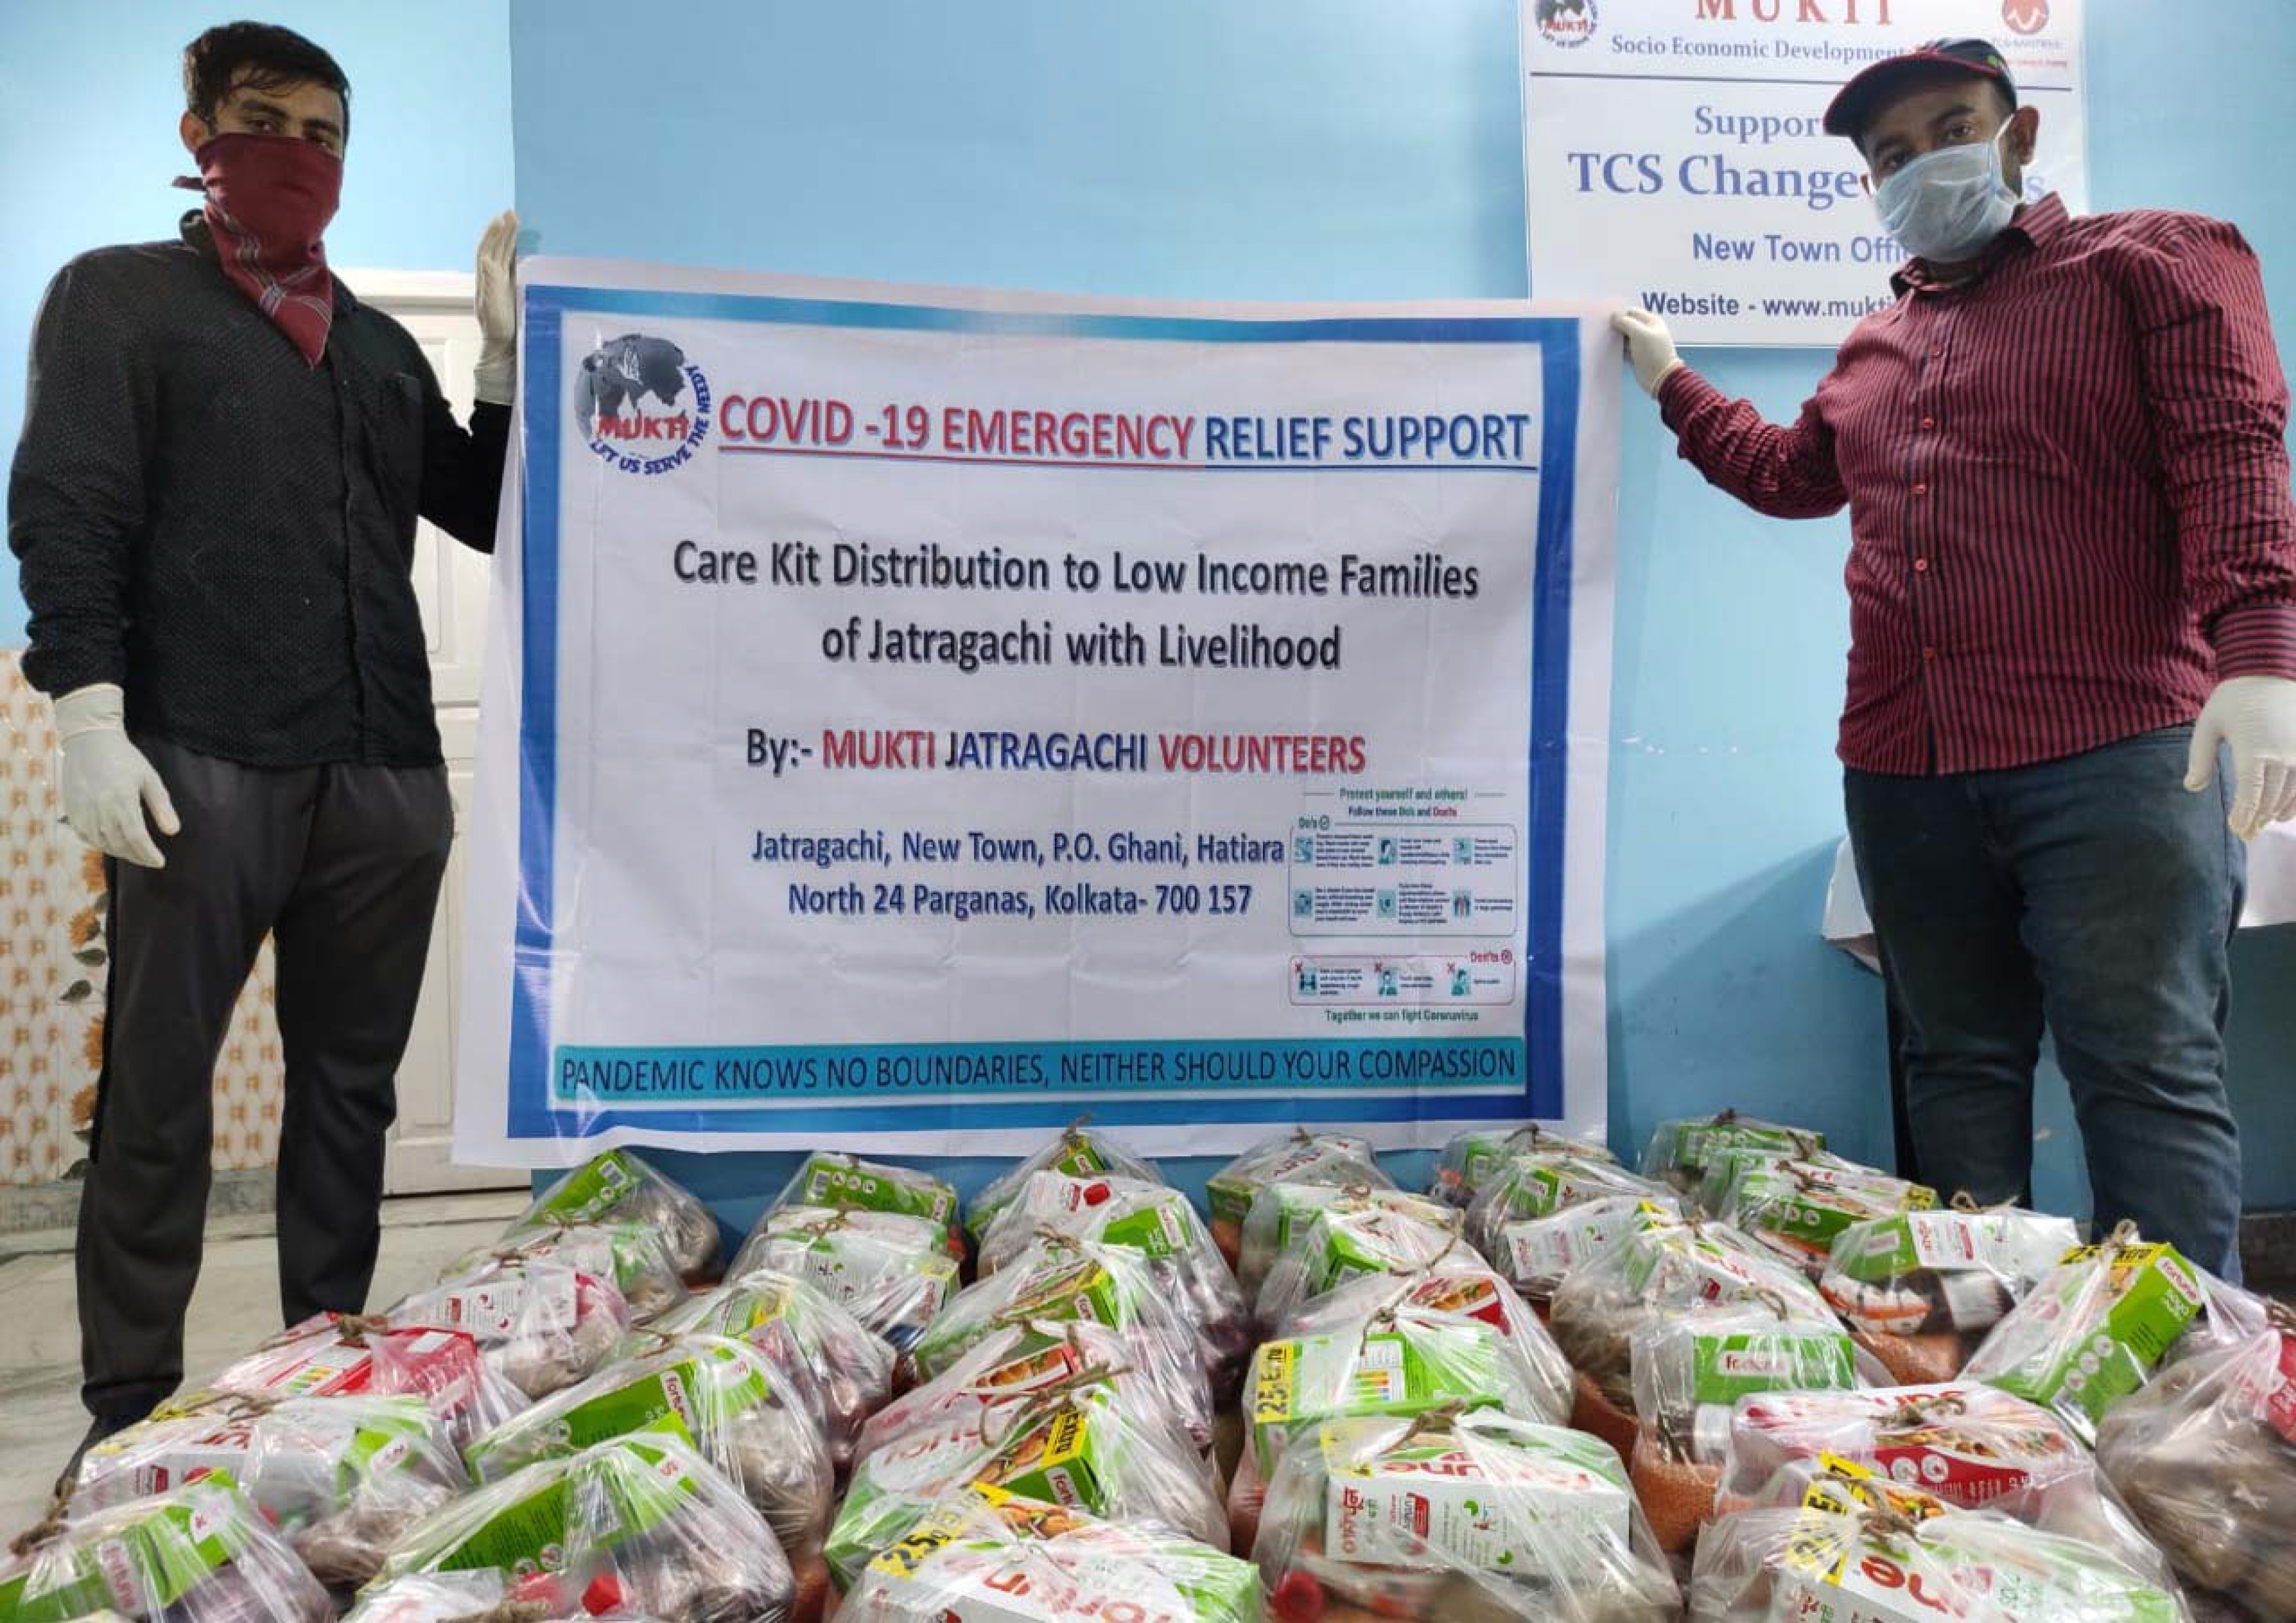 Essential Livelihood Care Kit Support by TCS Volunteers Associated with MUKTI Jatragachi Centre to Help Low Income Families of Jatragachi to fight Covid-19